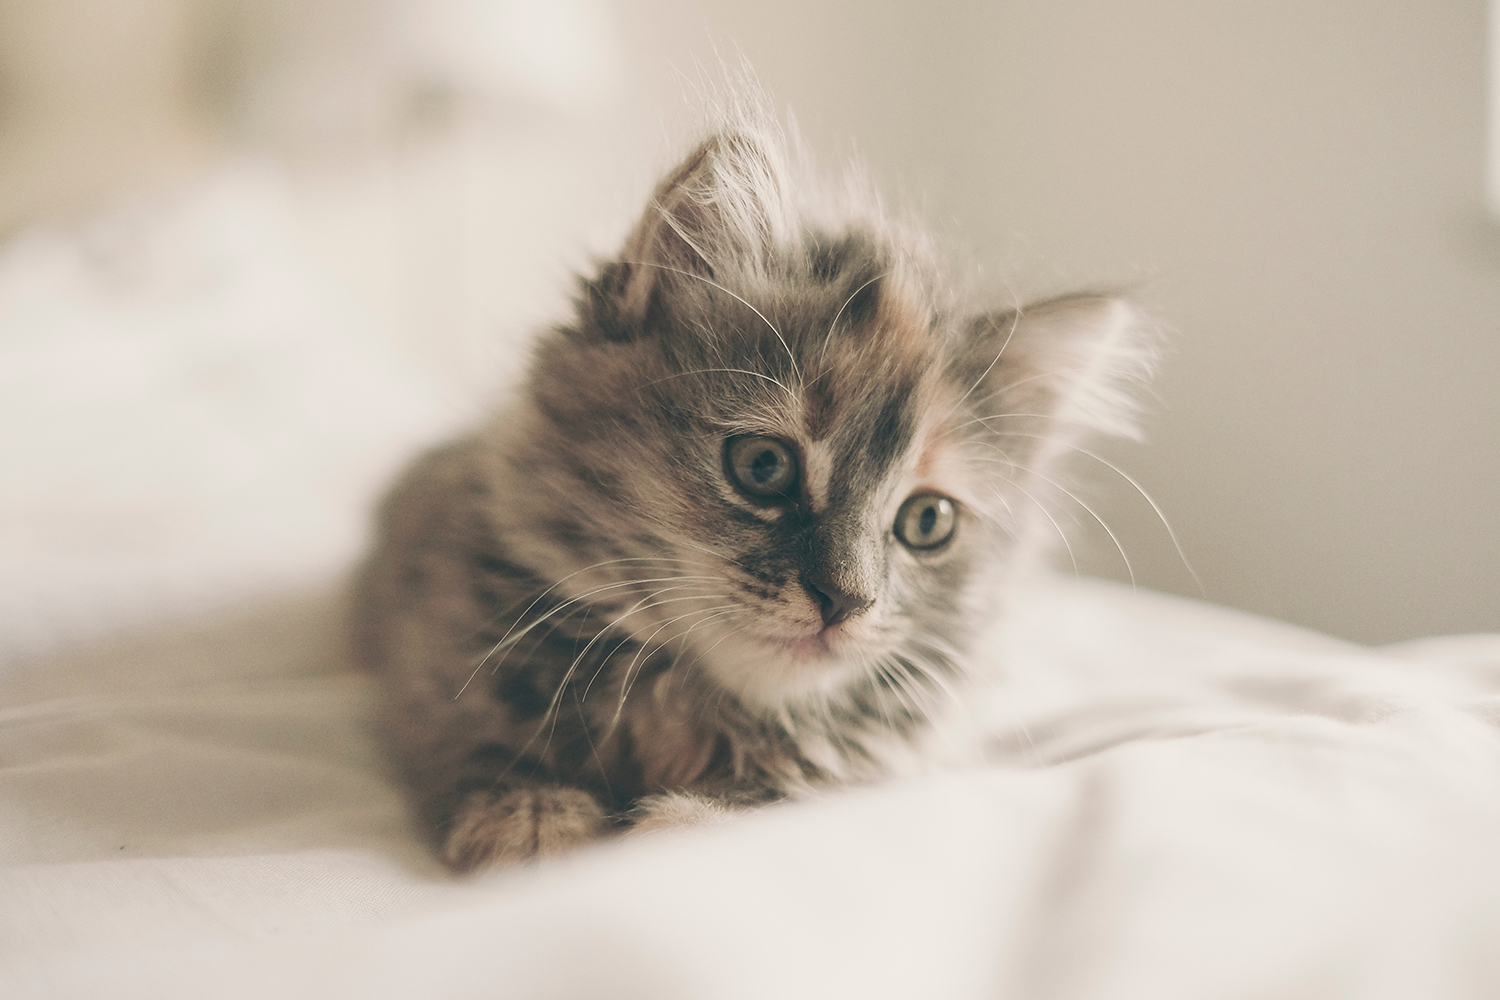 Do Kittens Get Lonely? Will My Kitten Be Lonely While I Am At Work?